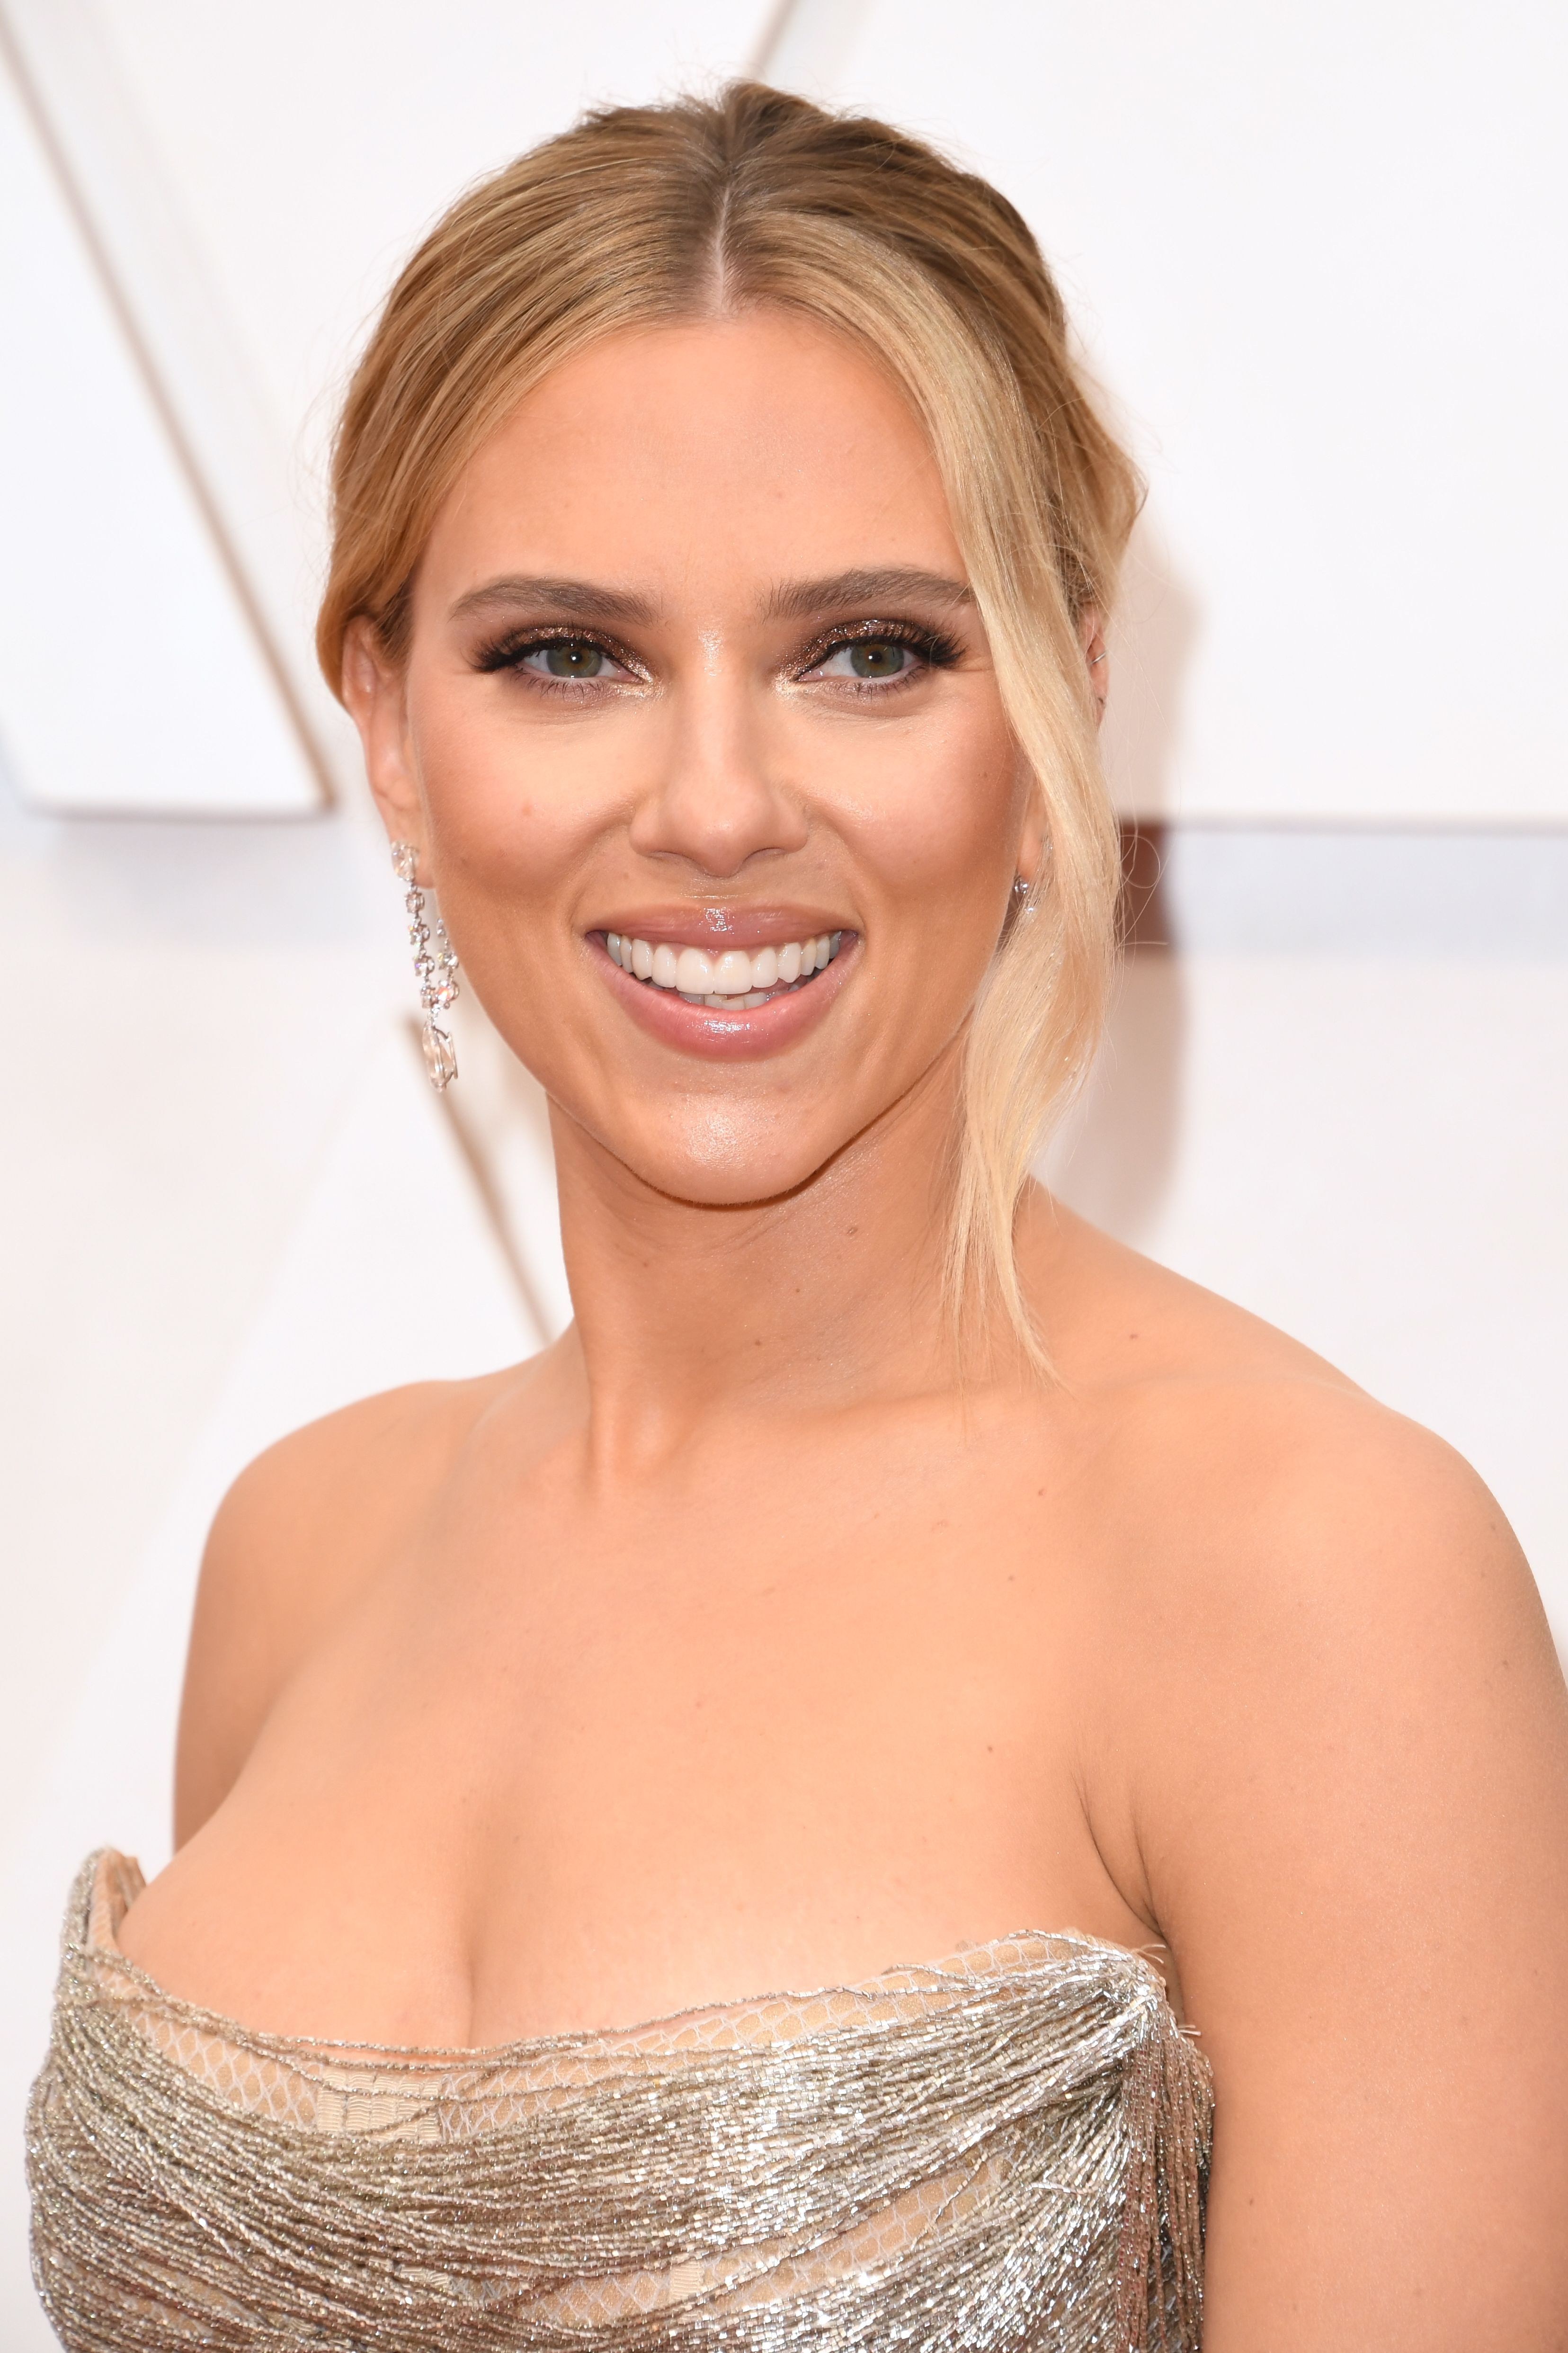 Oscars 2020 The 27 Best Hair And Makeup Looks From The Red Carpet